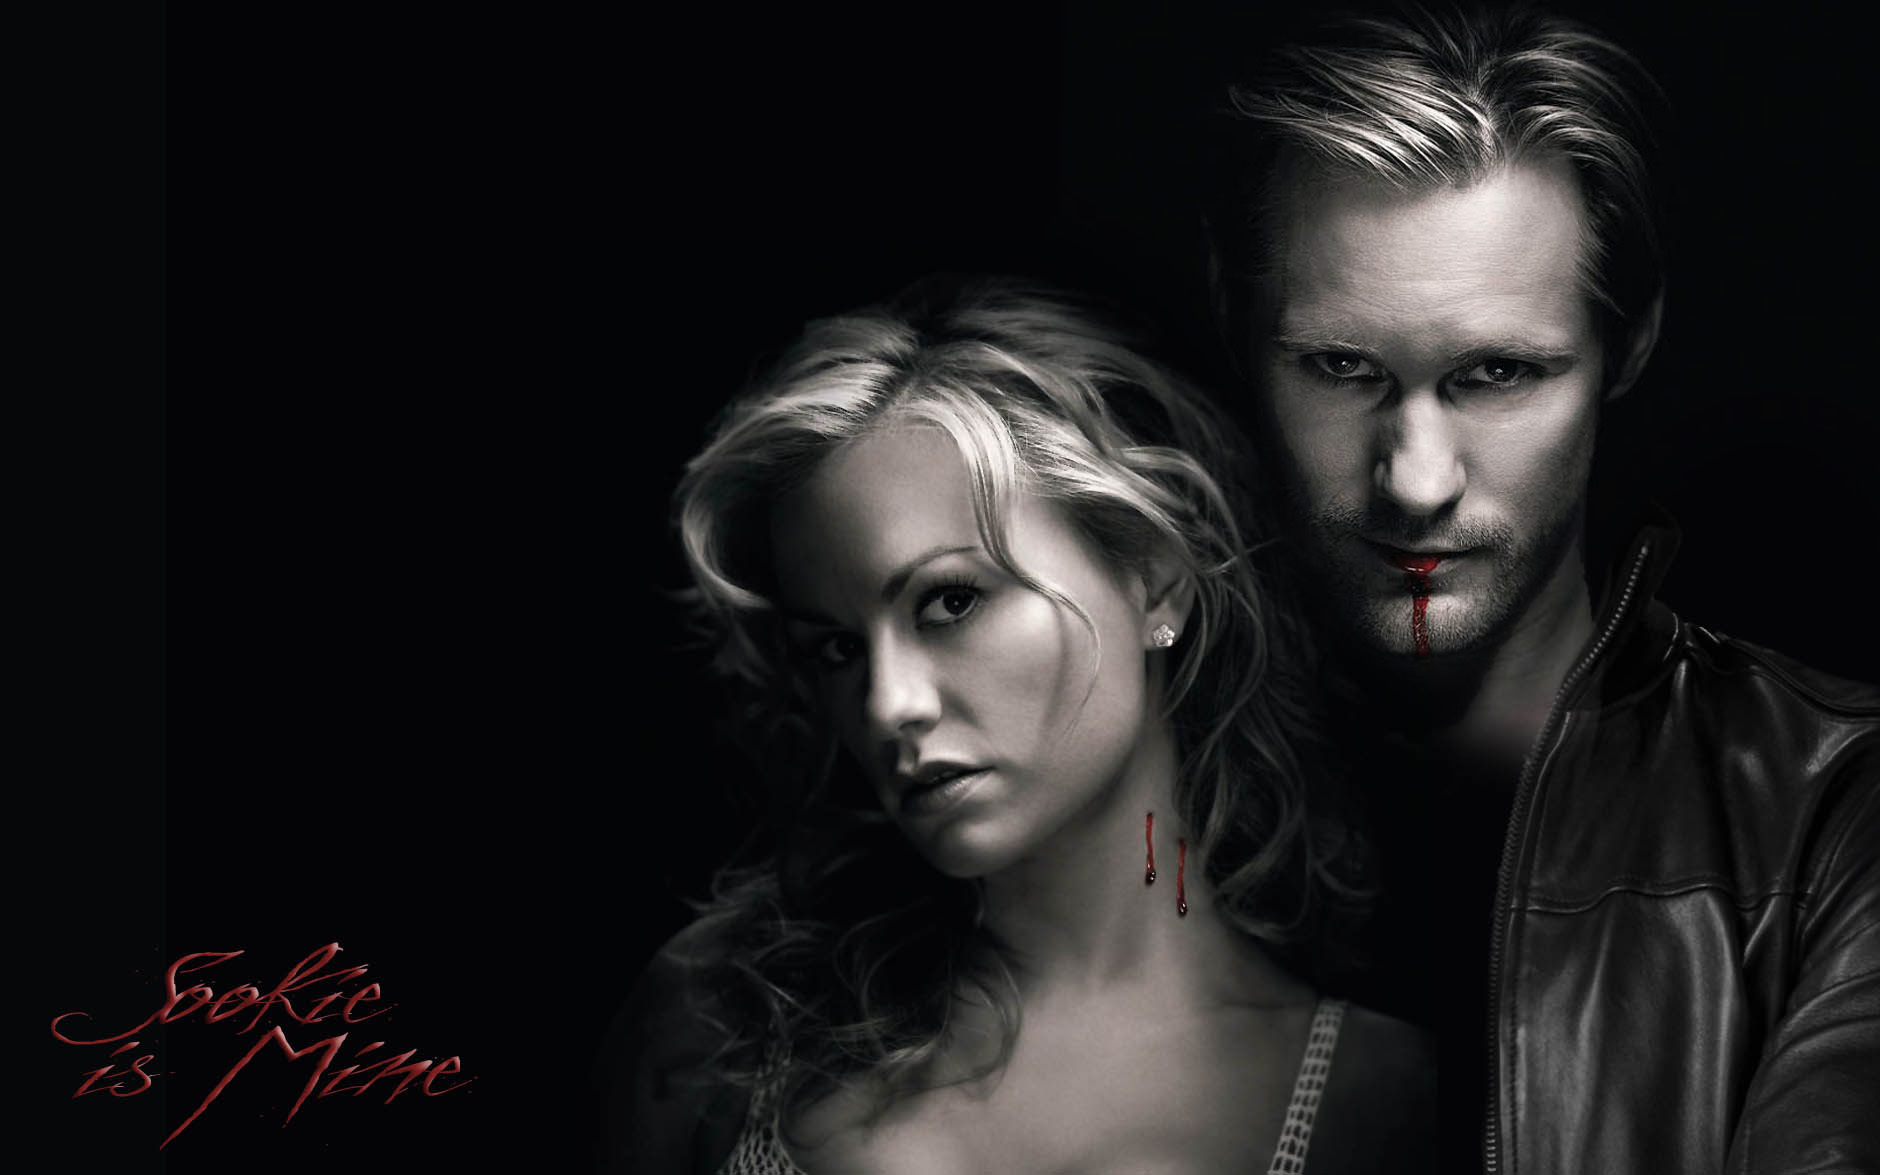 eric true blood wallpaper - photo #25